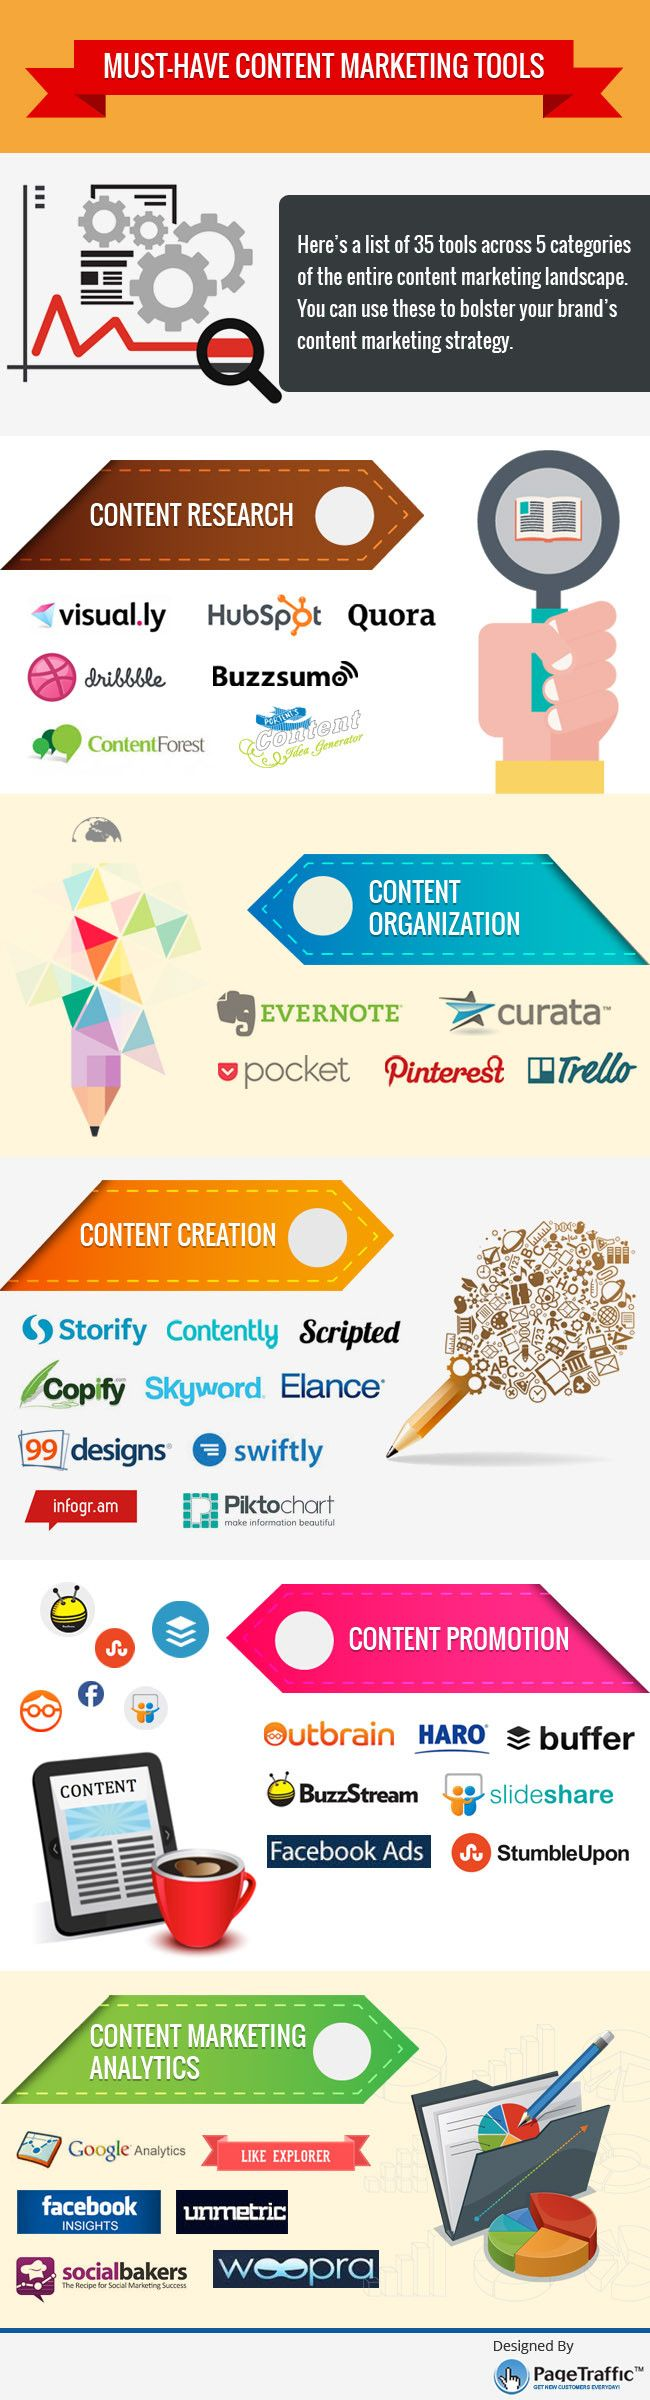 Must have content marketing tools! #infografia #infographic #marketing